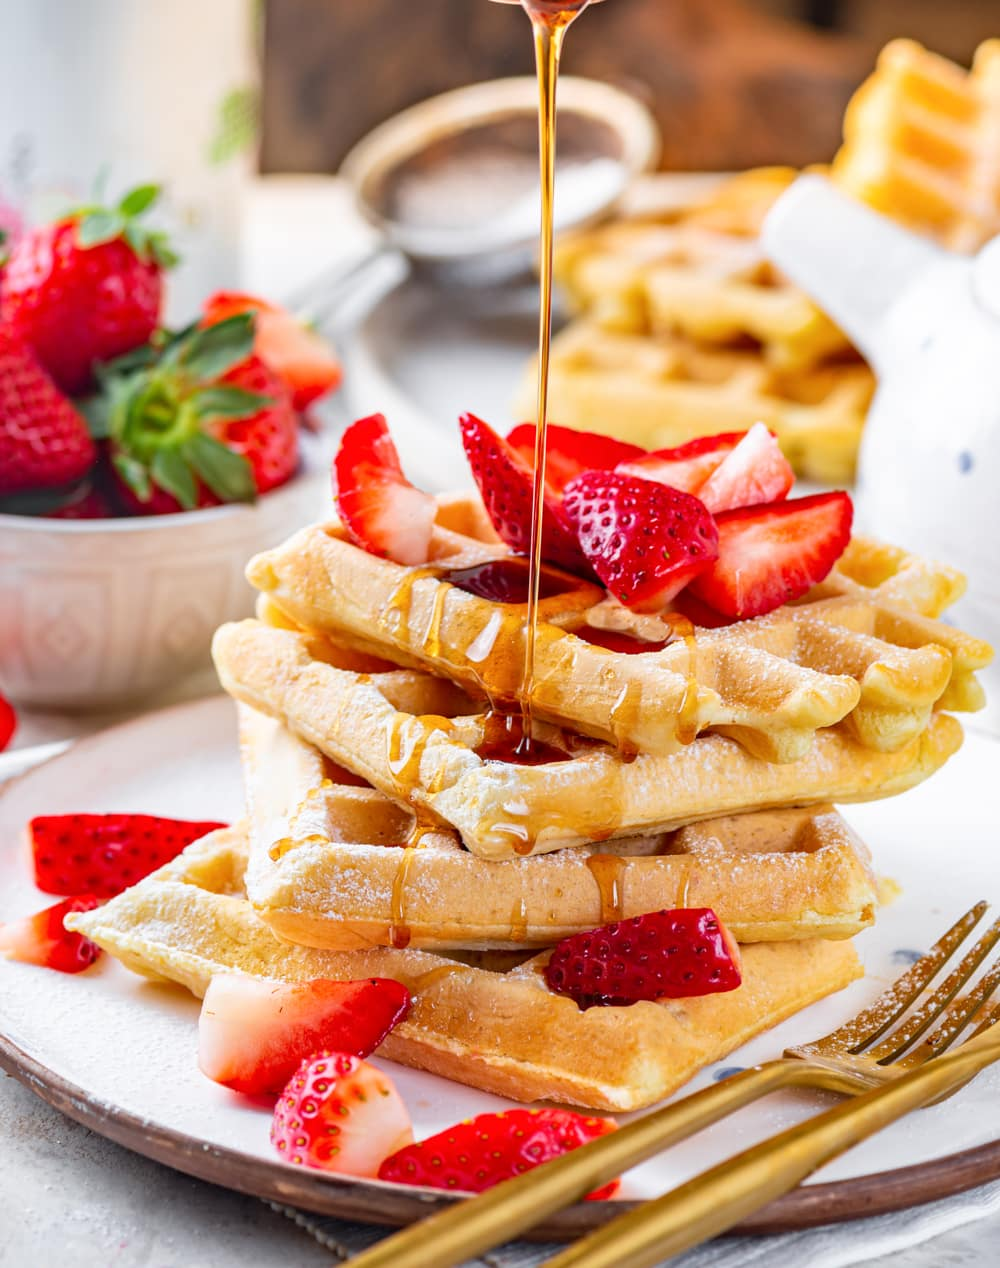 Four square vegan waffles stacked unevenly on a white plate. There are cut up strawberries on the waffles and maple syrup being poured on top. A gold fork is at the front of the plate and there is a bowl of strawberries at the back left of the plate and a plate of vegan waffles directly behind the plate.